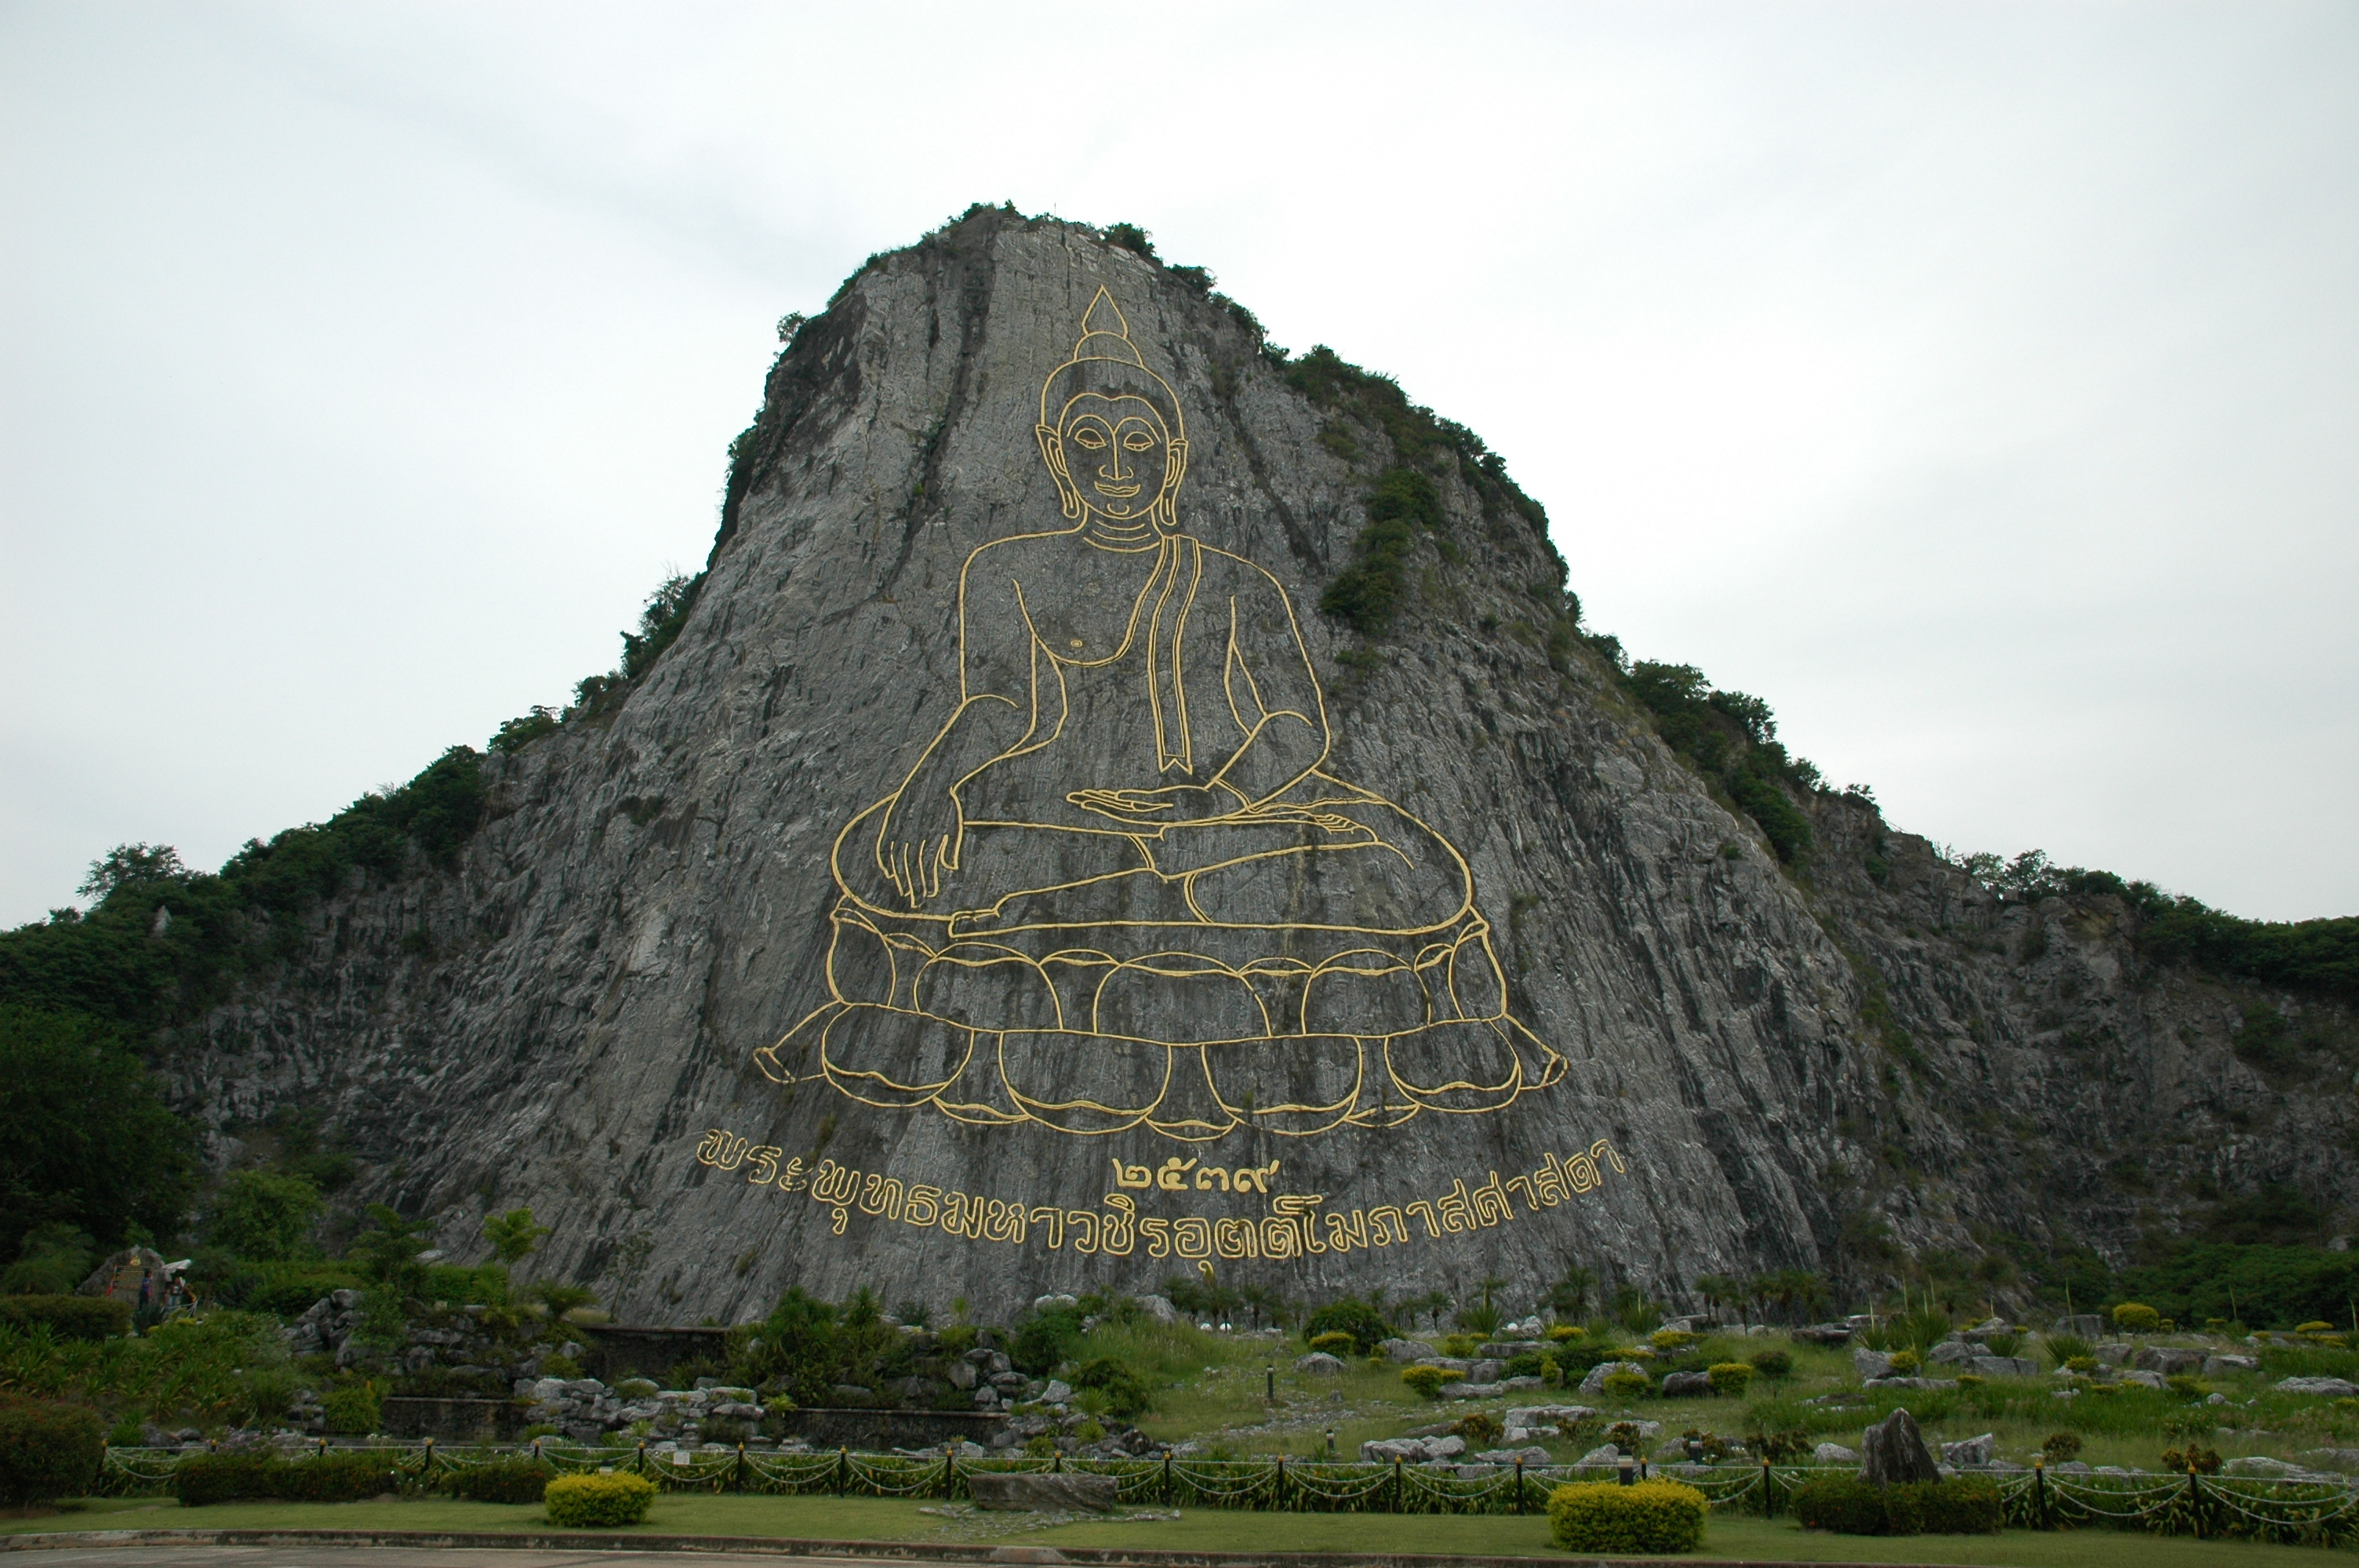 Chonburi Thailand  City pictures : List of Tourist Attractions in Chonburi, Thailand Touristlink